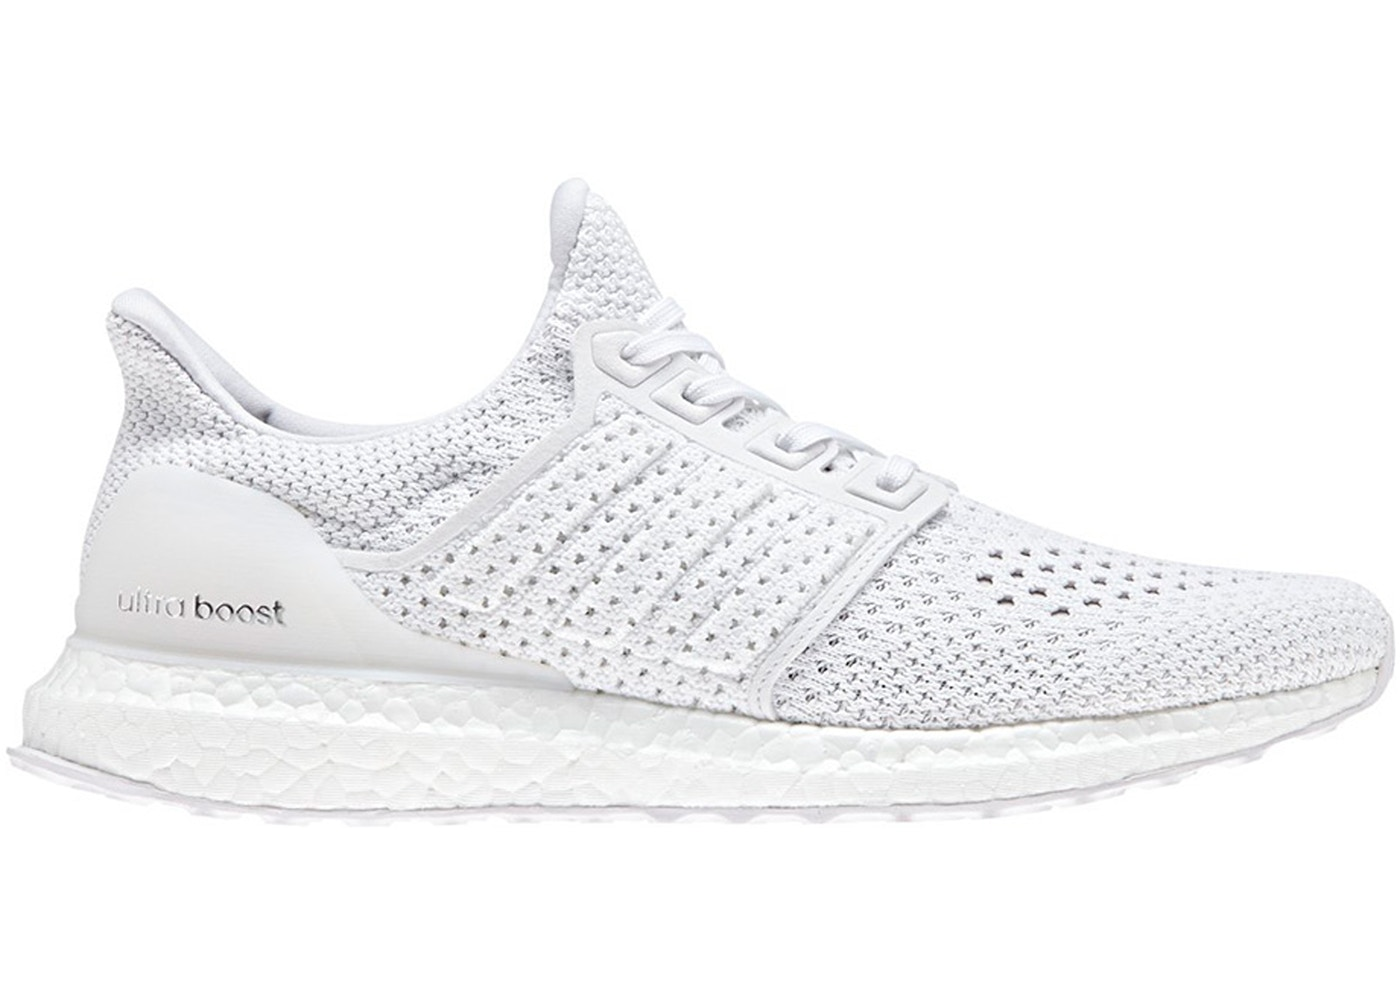 edf1941e6c3a8 adidas Ultra Boost Clima White - BY8888